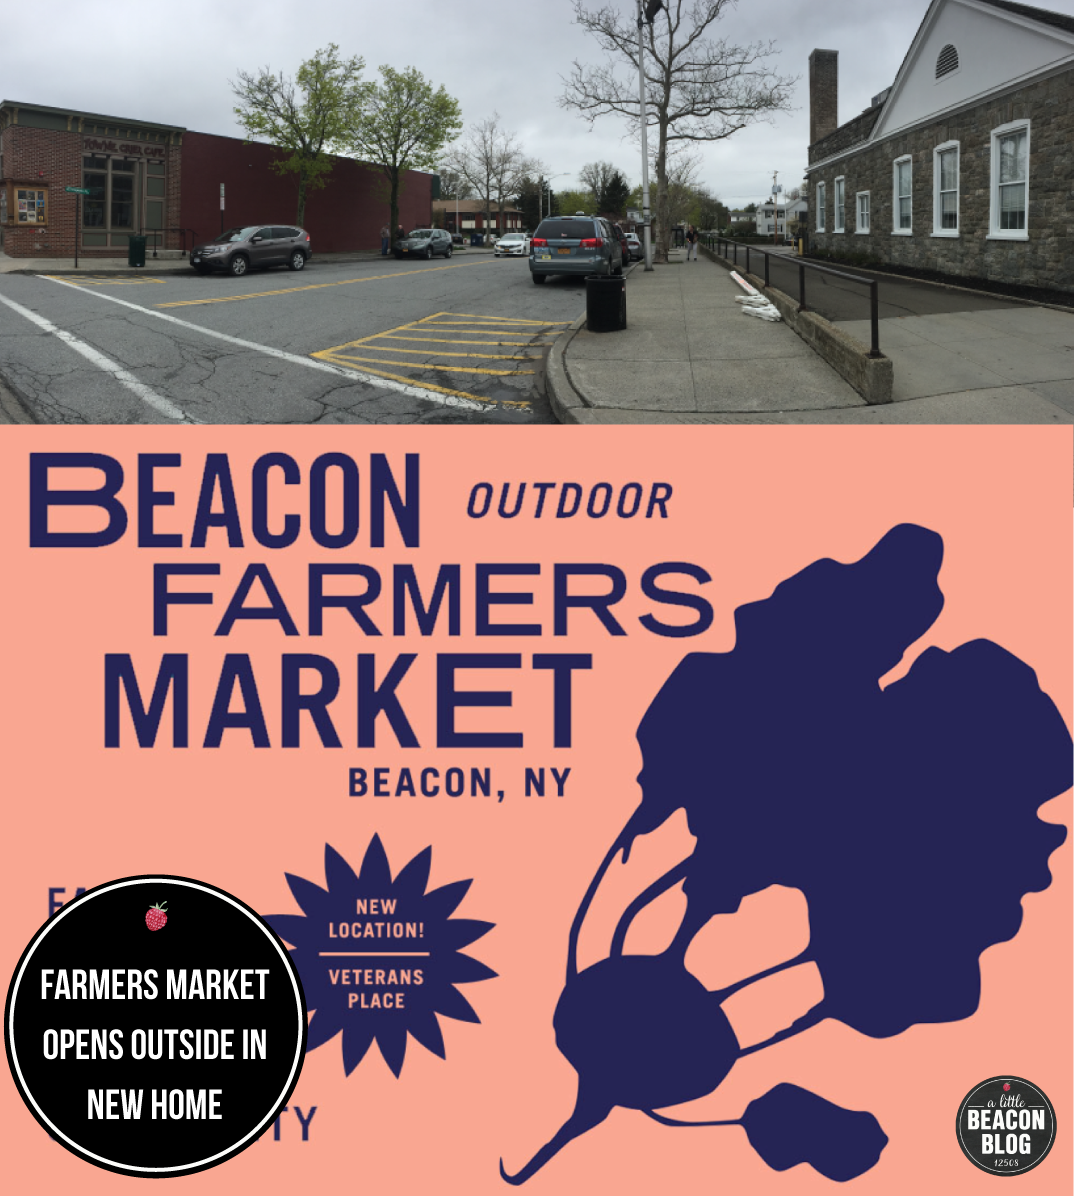 The Beacon Farmers Market will be outside on Veterans Place, right off of Main Street, in between the  Towne Crier Cafe  and the Post Office.